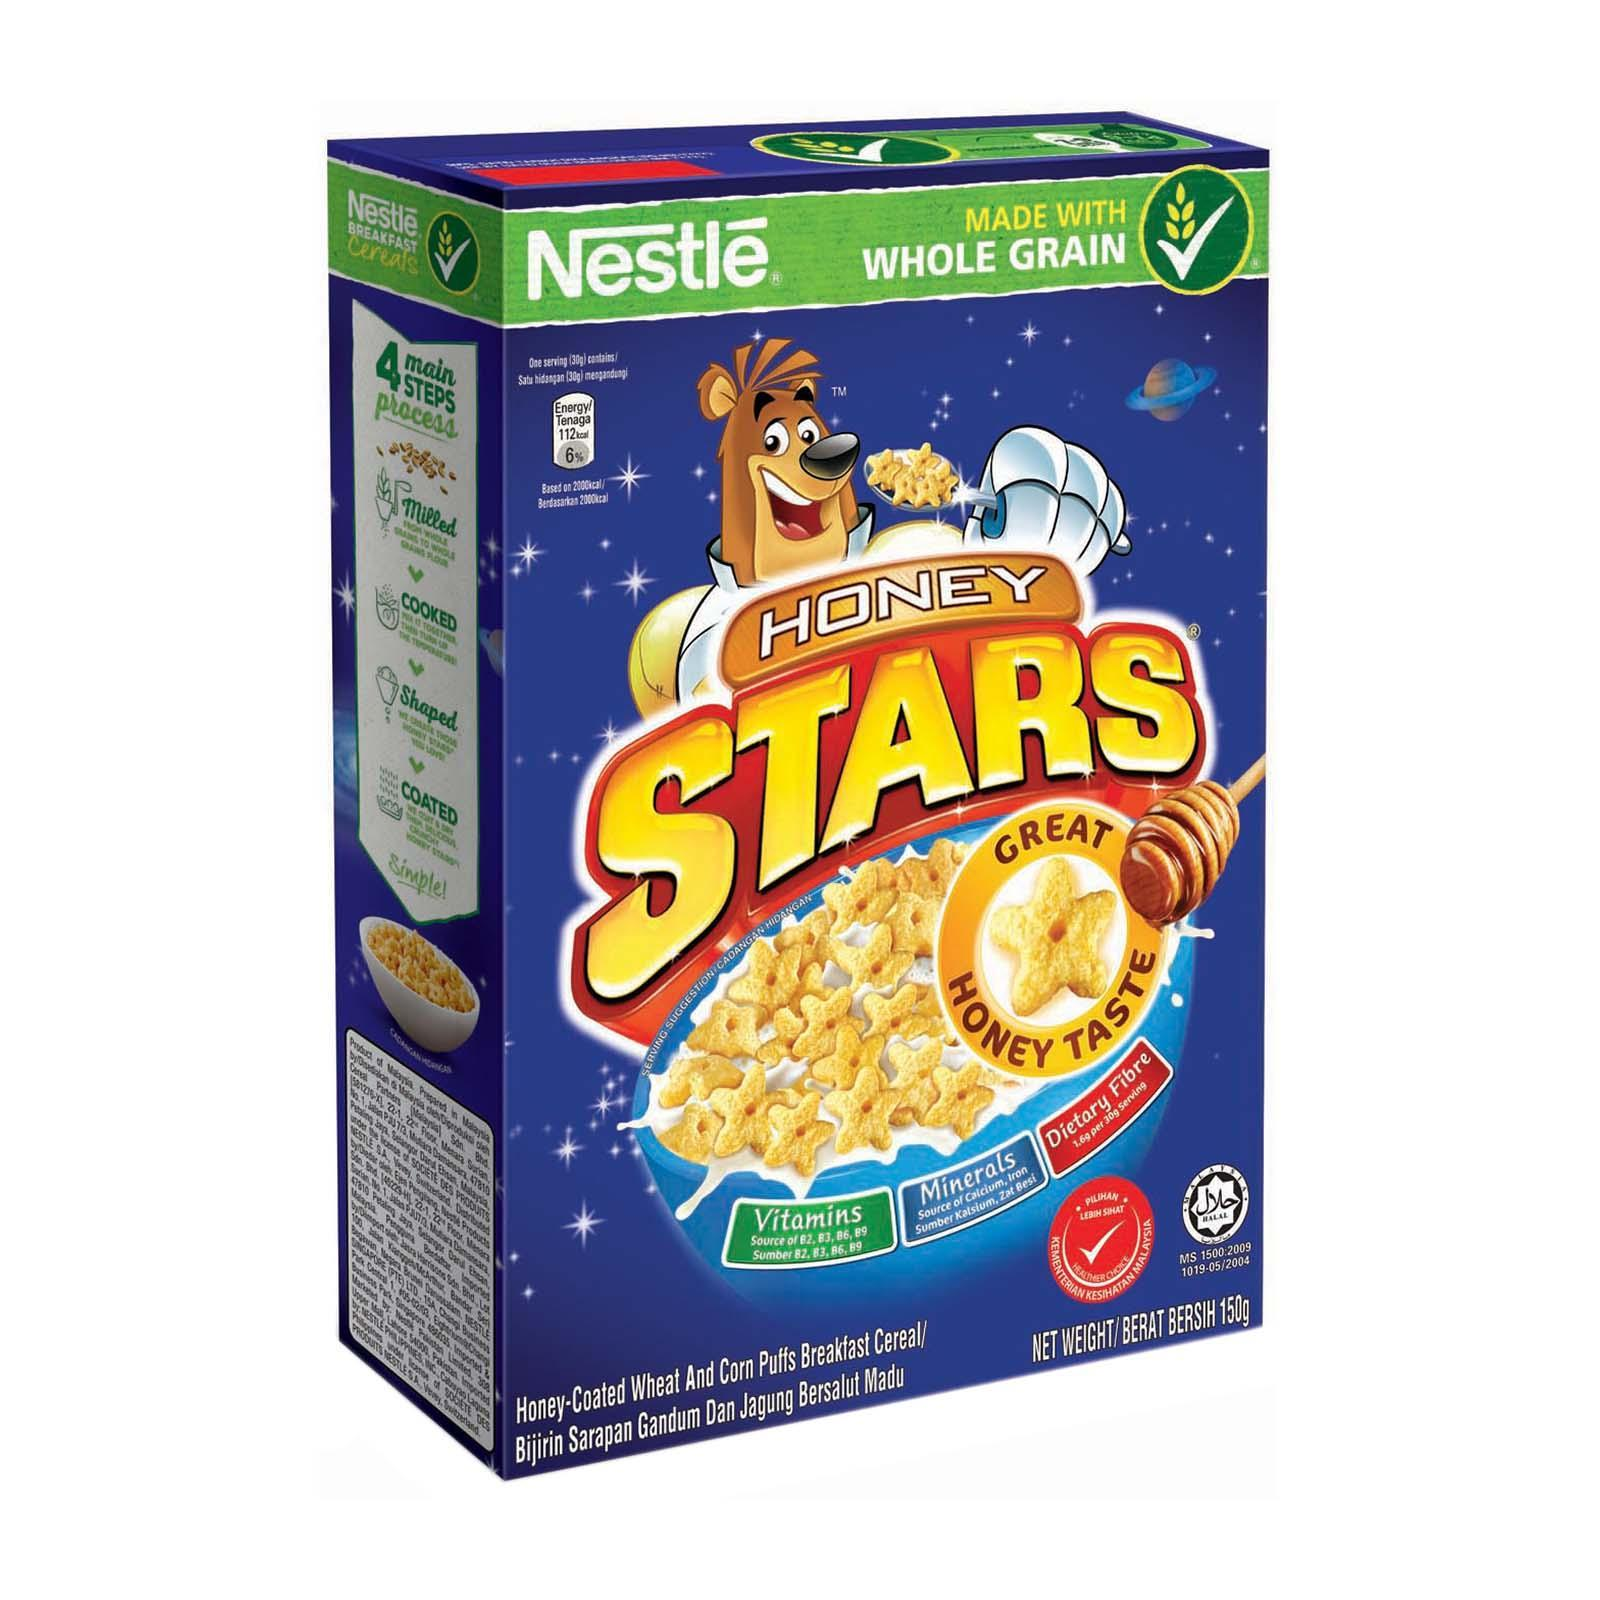 NESTLE HONEY STARS Cereal With Whole Grain